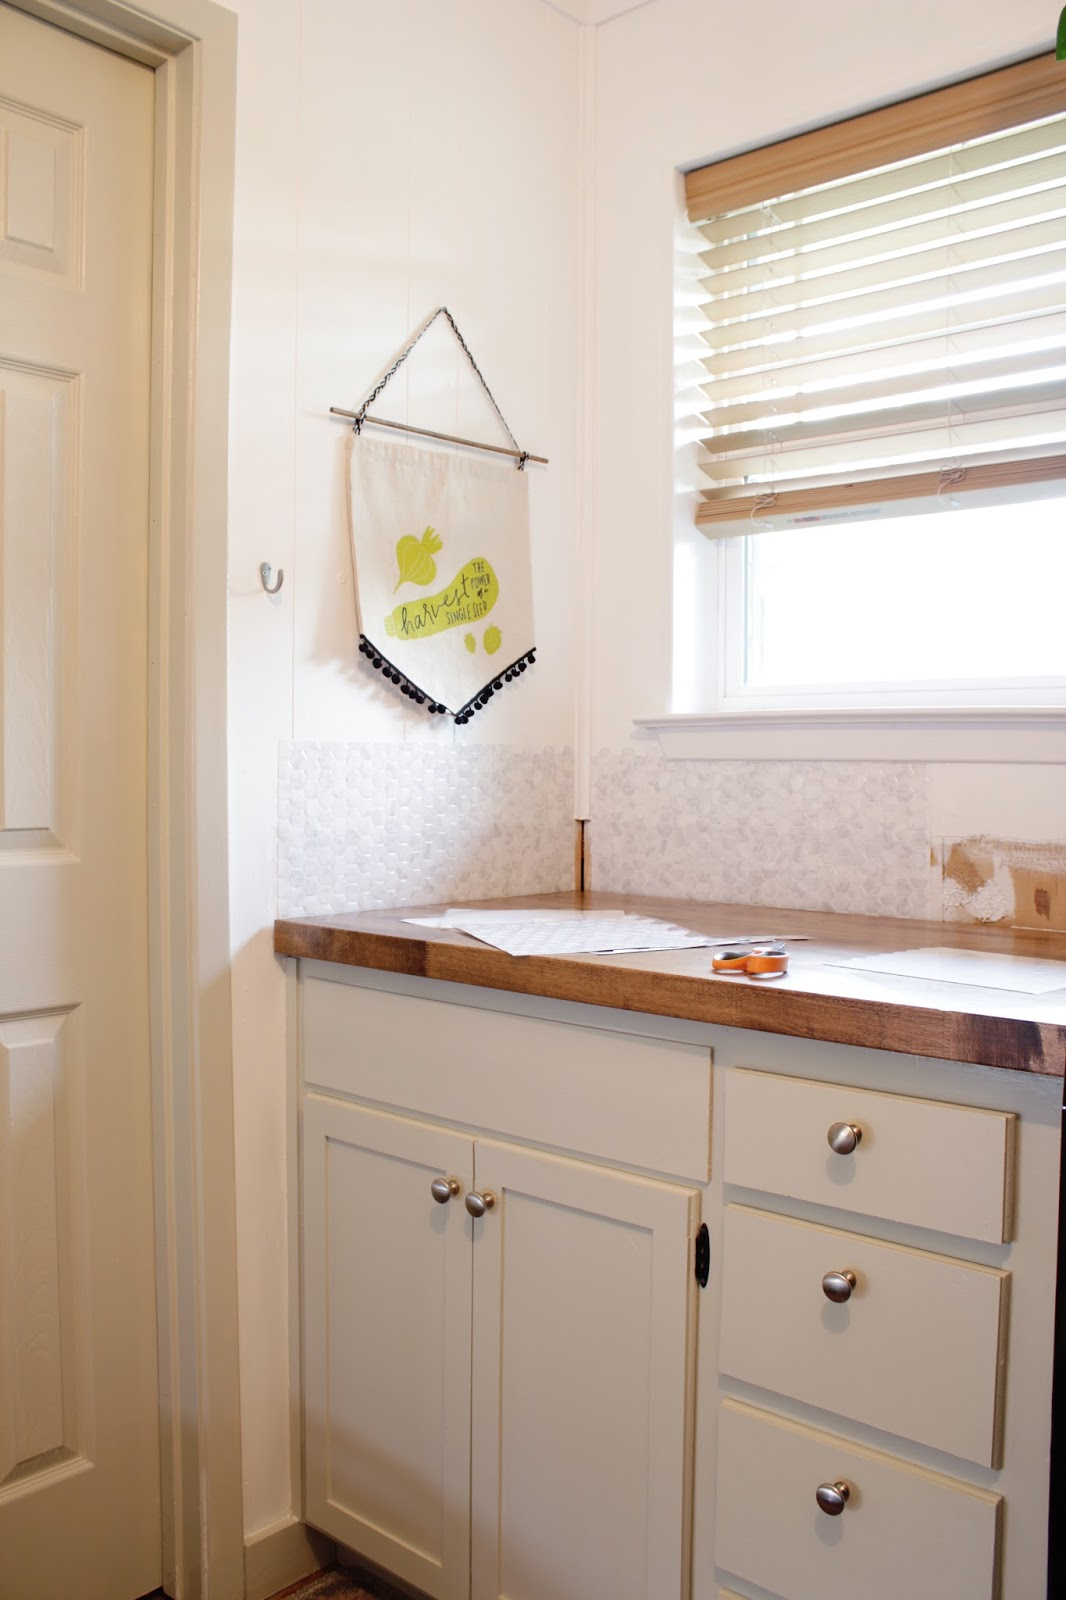 Peel & Stick Tile with Brewster Home Furnishings. These tiles were such a quick way to add lots of style to our laundry room! | House Homemade